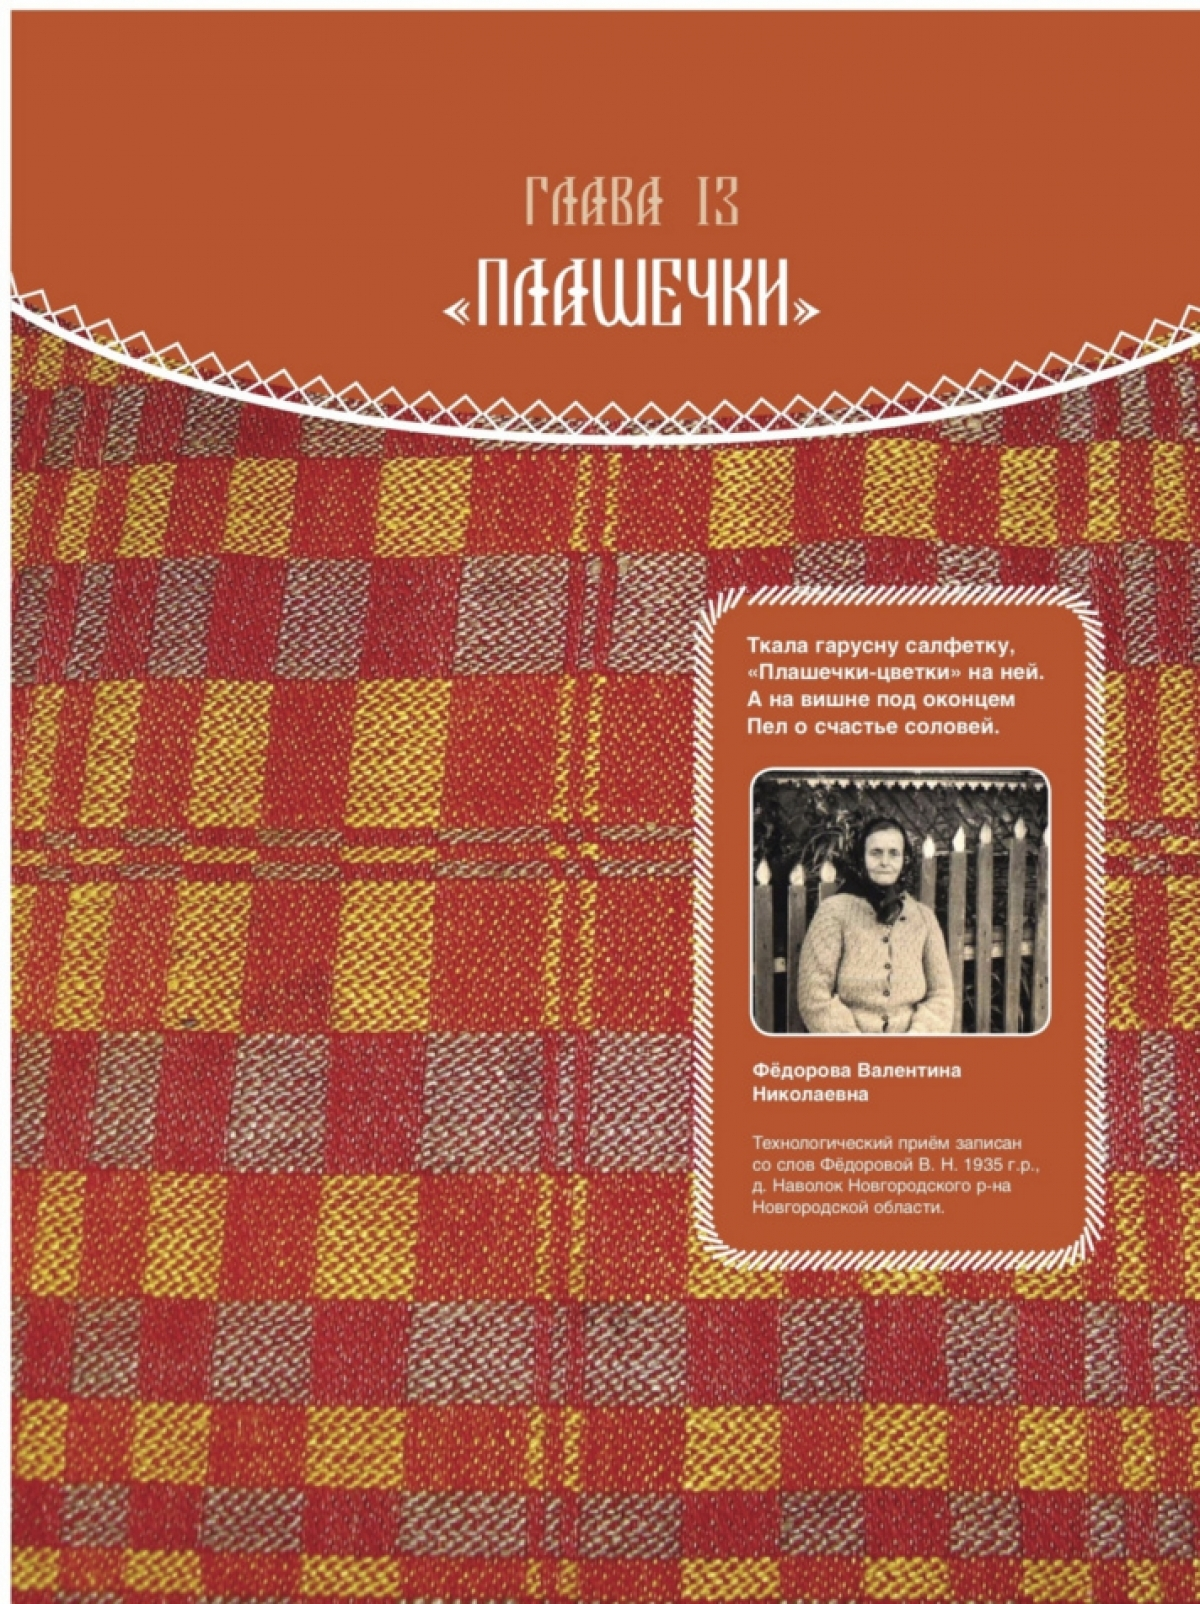 Patterned Weaving. Novgorod Traditions and Modernity